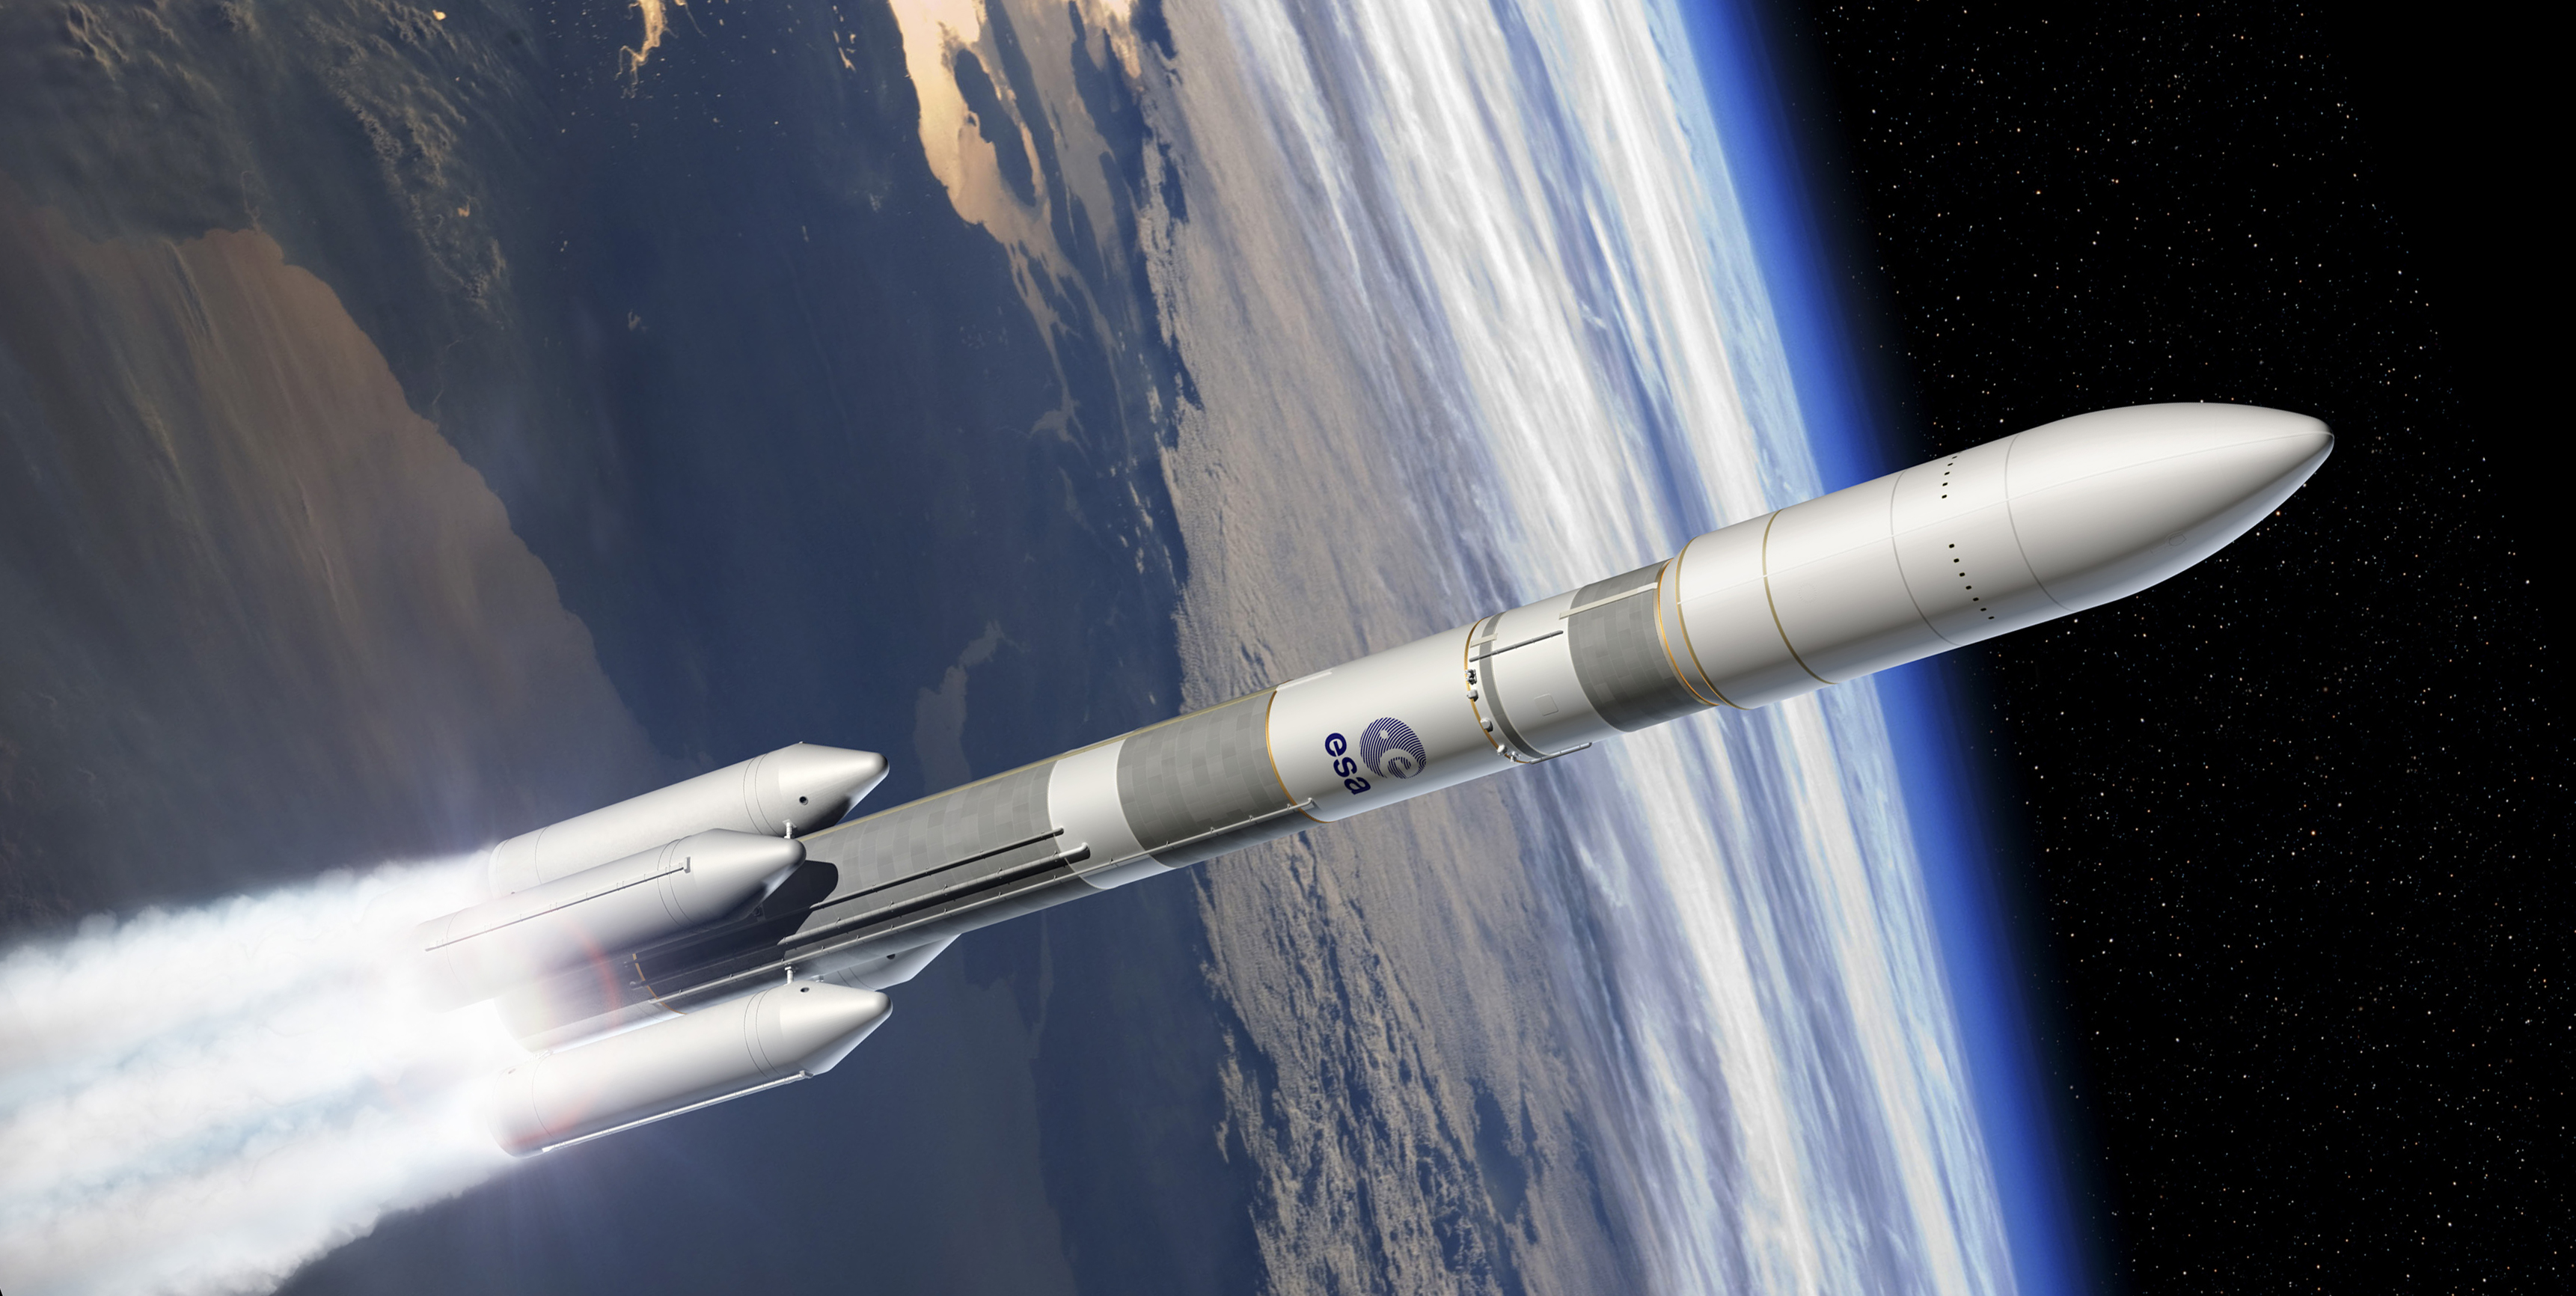 artist_s_view_of_the_ariane_6_four_boosters_configuration_a64.jpg